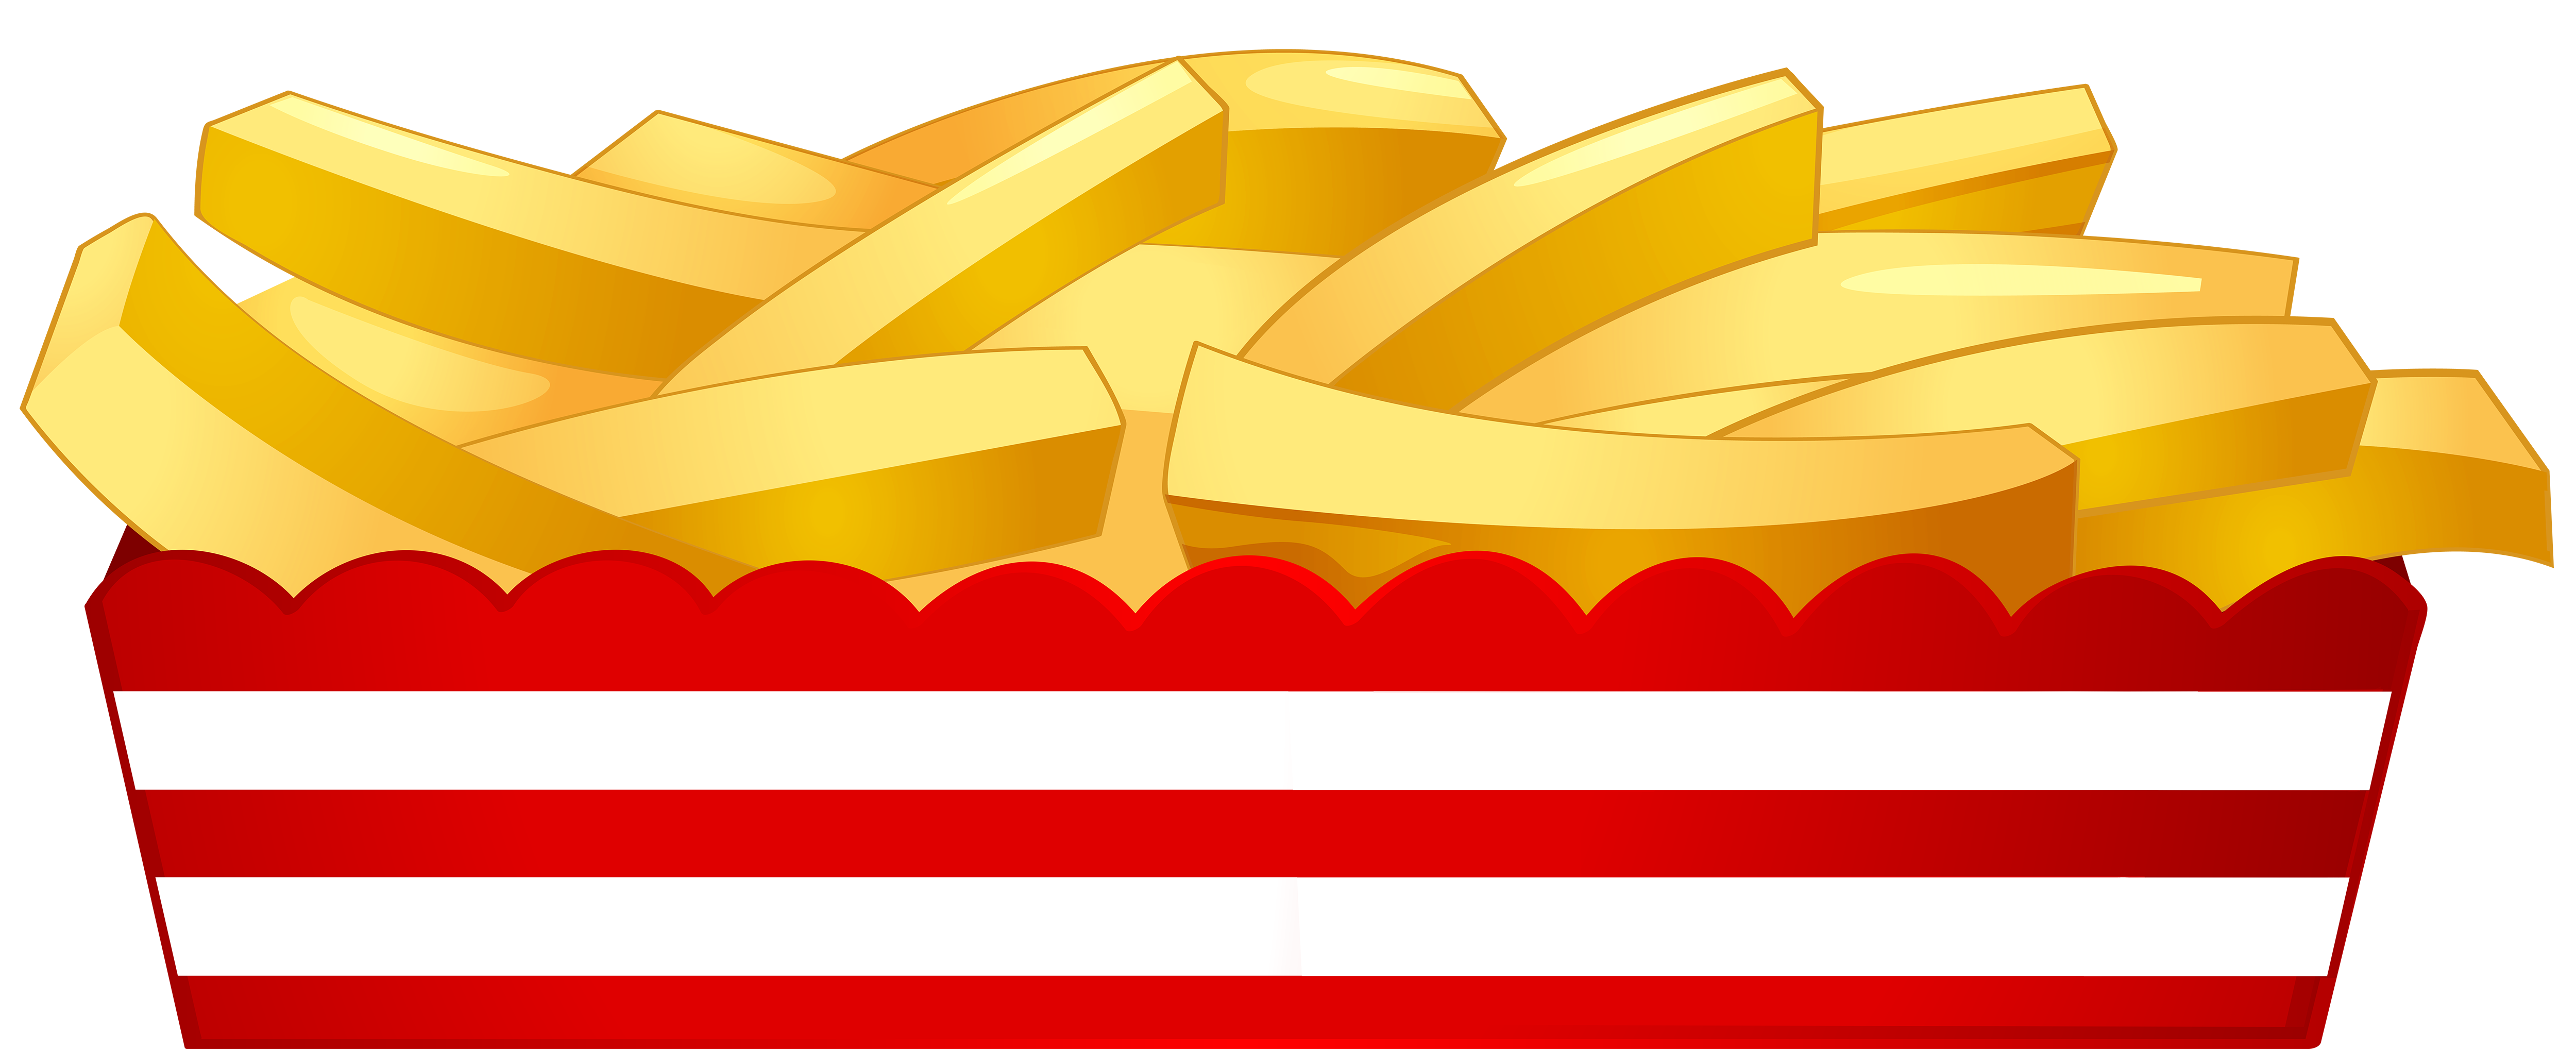 French Fries clipart Food Clip Savoronmorehead Fries Clip